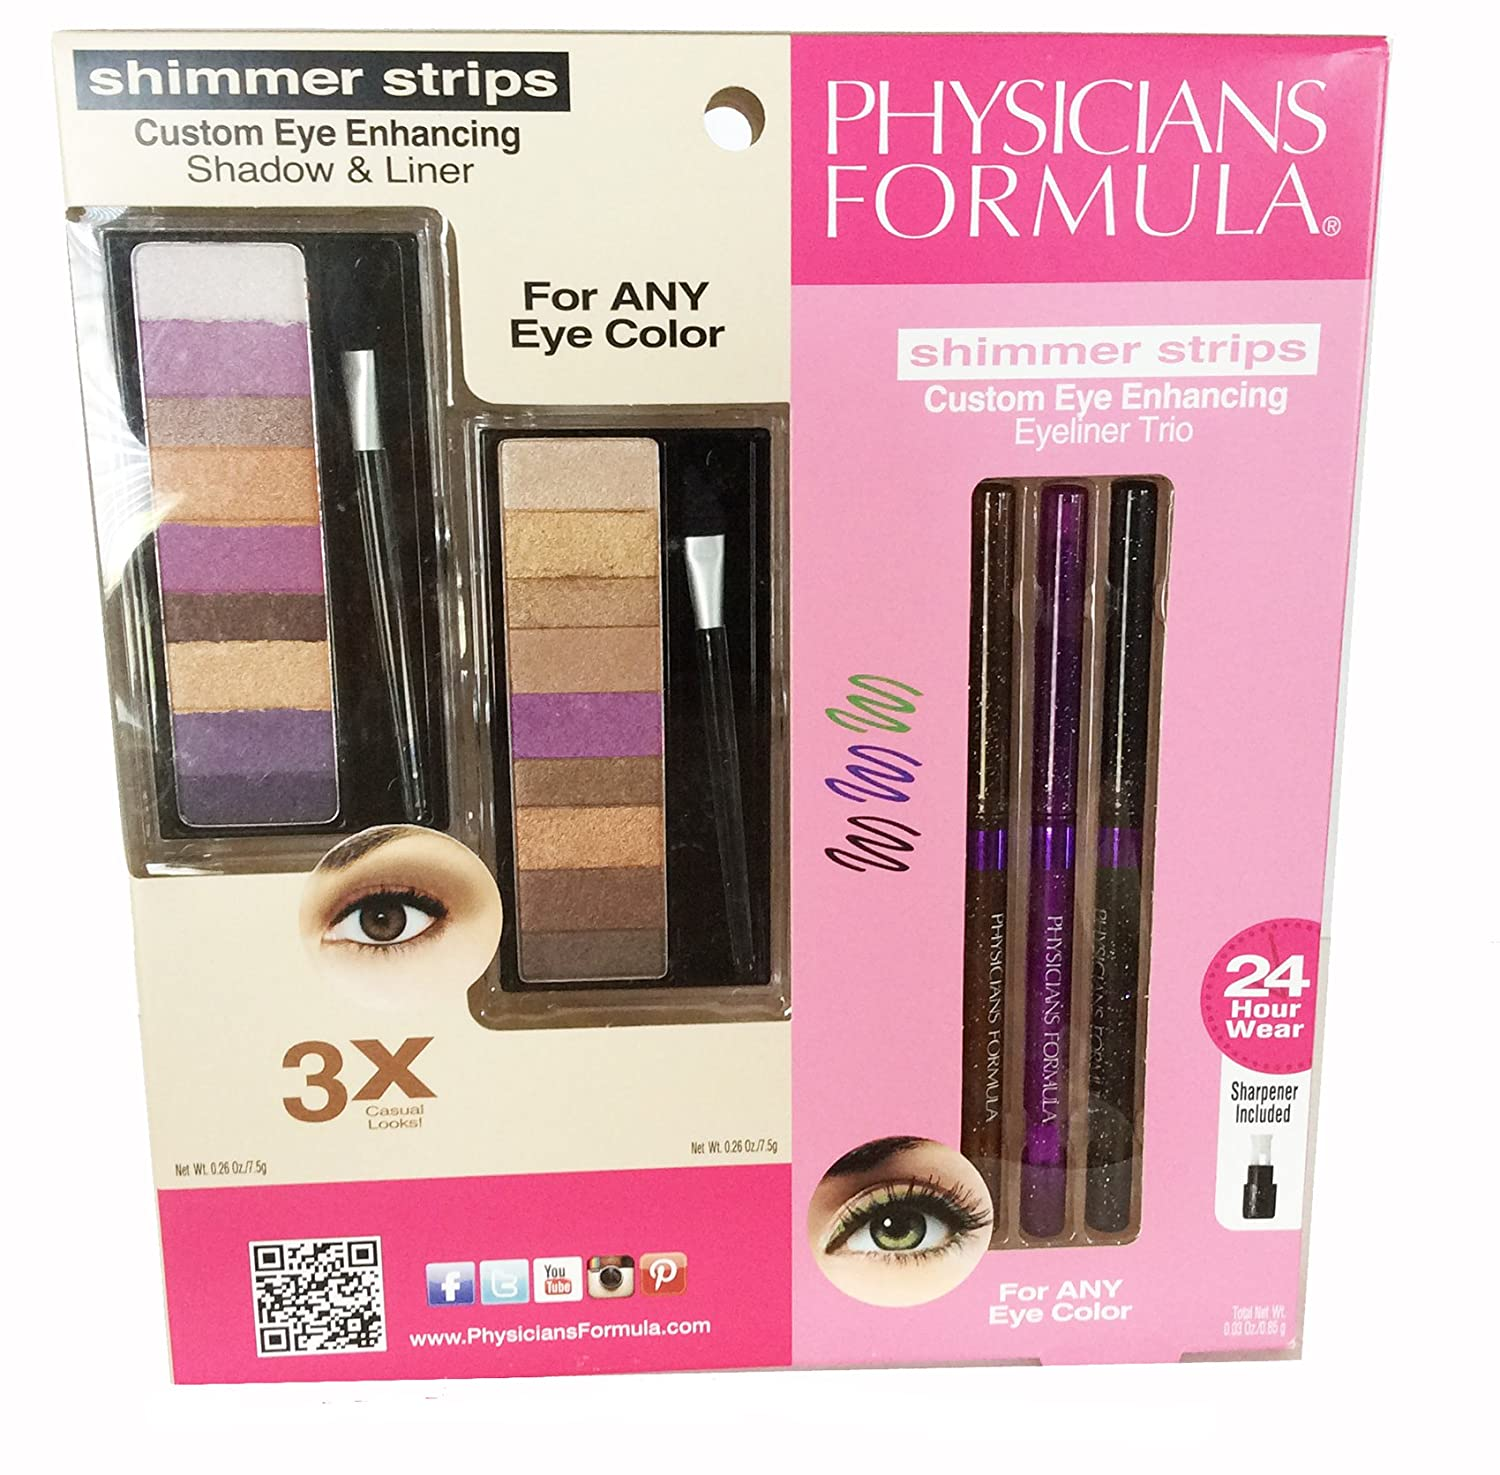 Physicians Formula Dual Package, Shimmer Strips Custom Eye Enhancing Shadow and Liner AND Eiliner Trio for any Eye Color